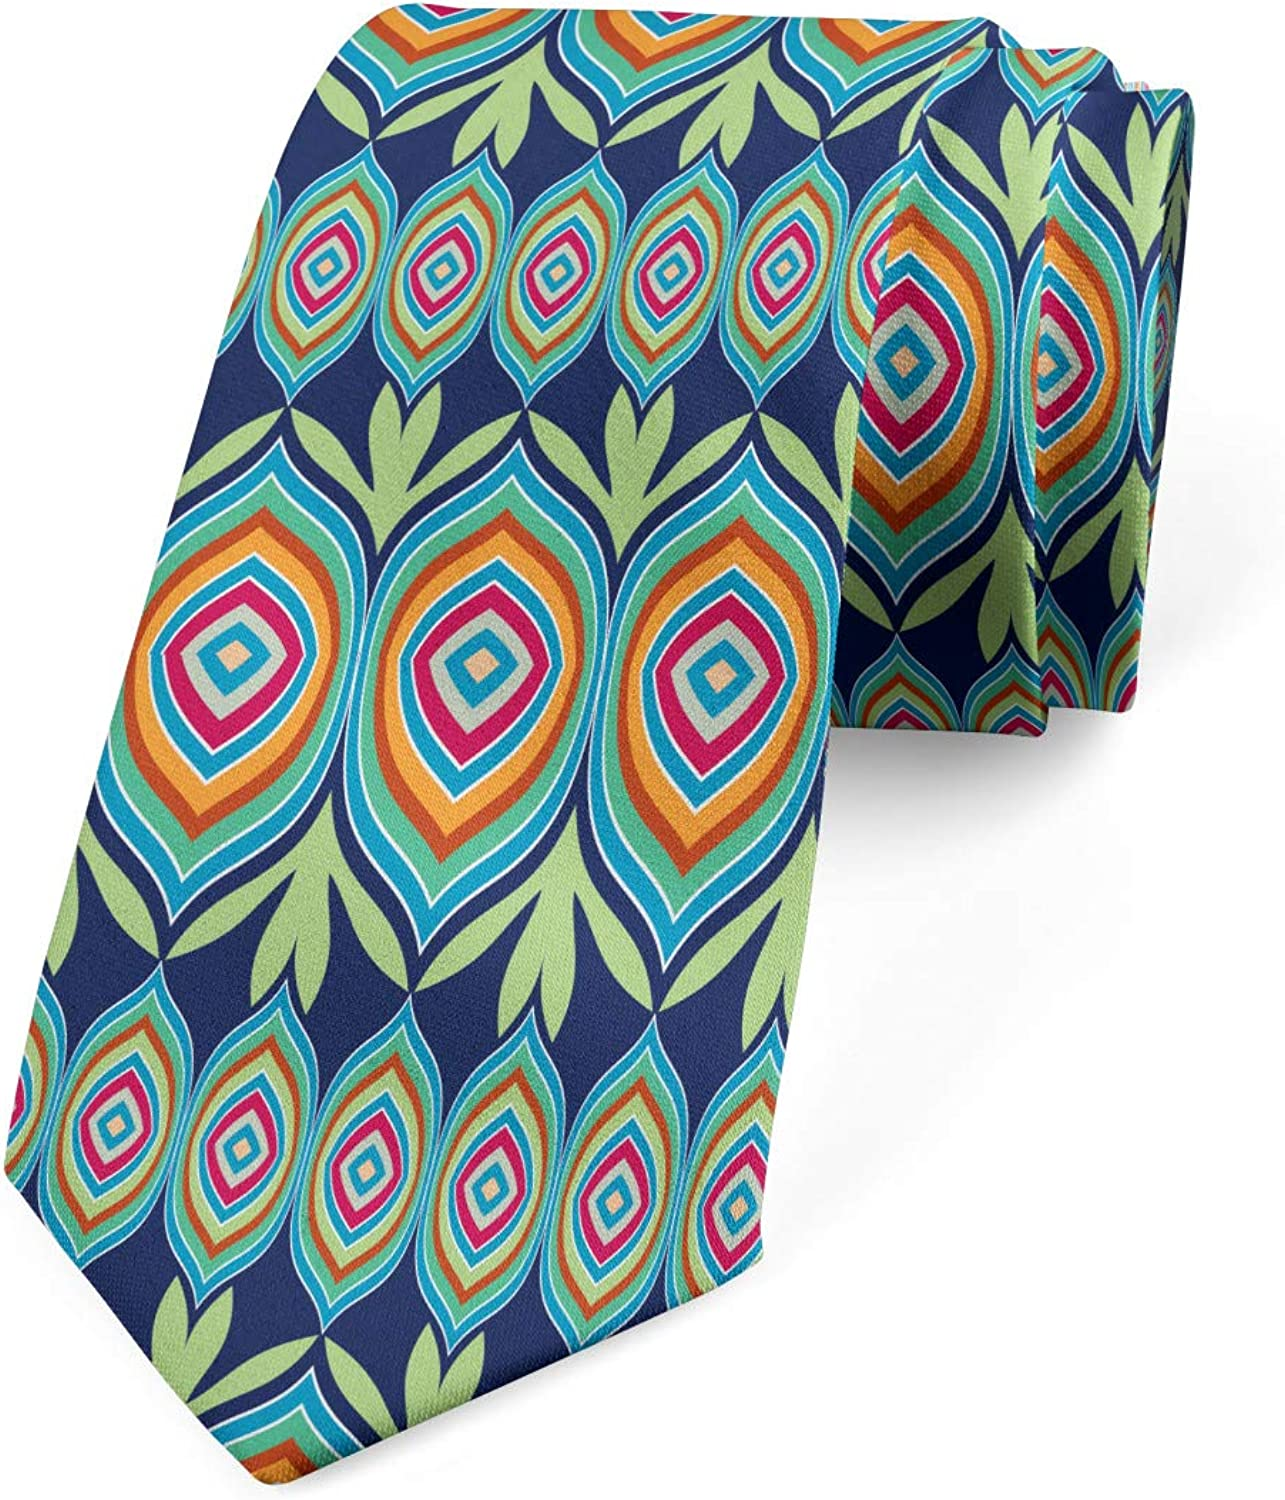 Ambesonne Men's Tie, Abstract Colorful Shapes, Necktie, 3.7